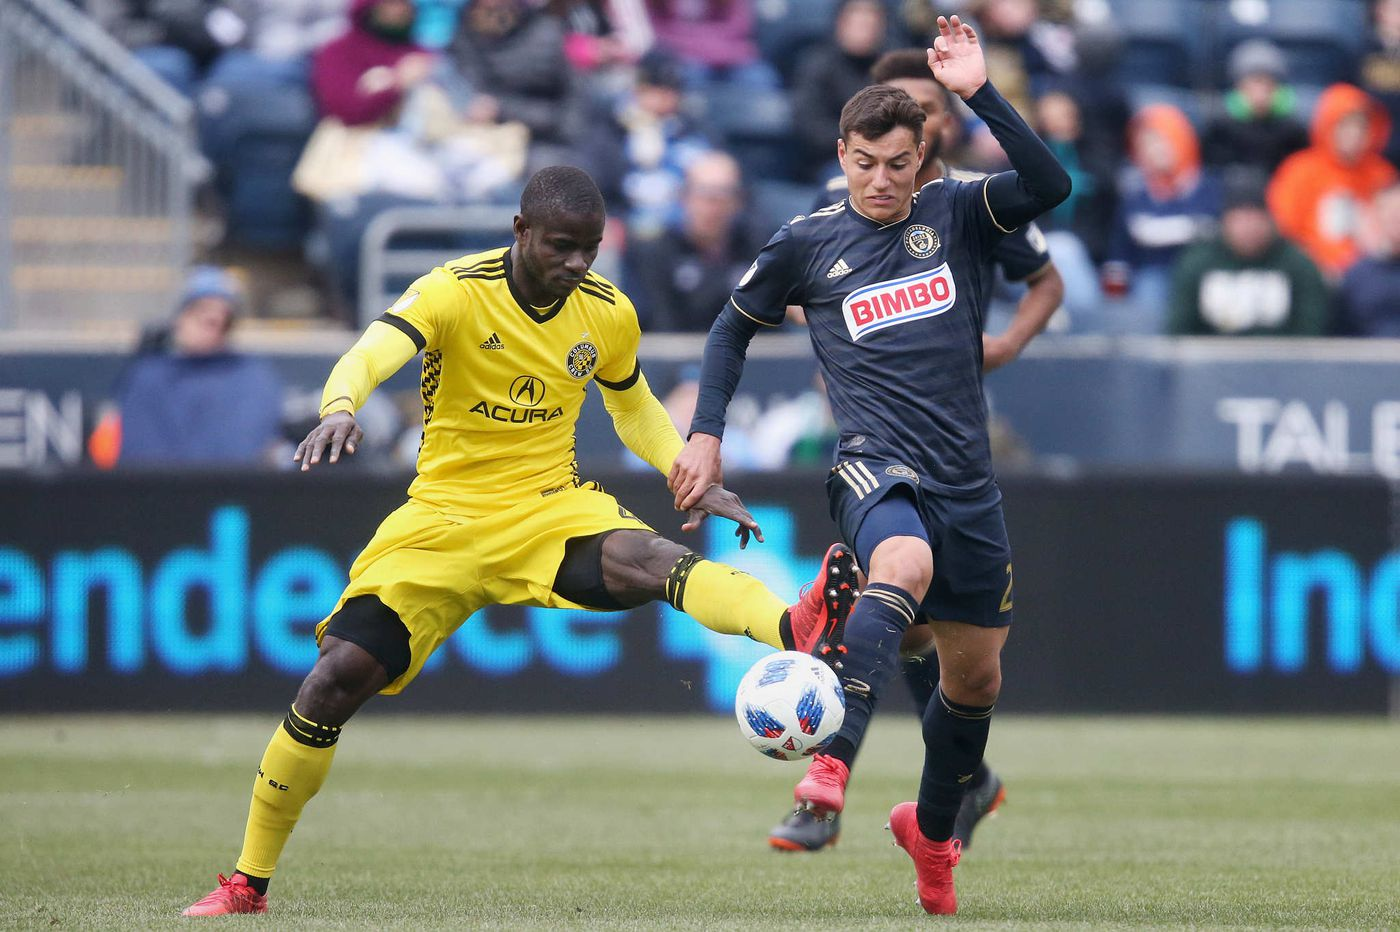 Union's Anthony Fontana hopes to show more of his attacking skill in 2019